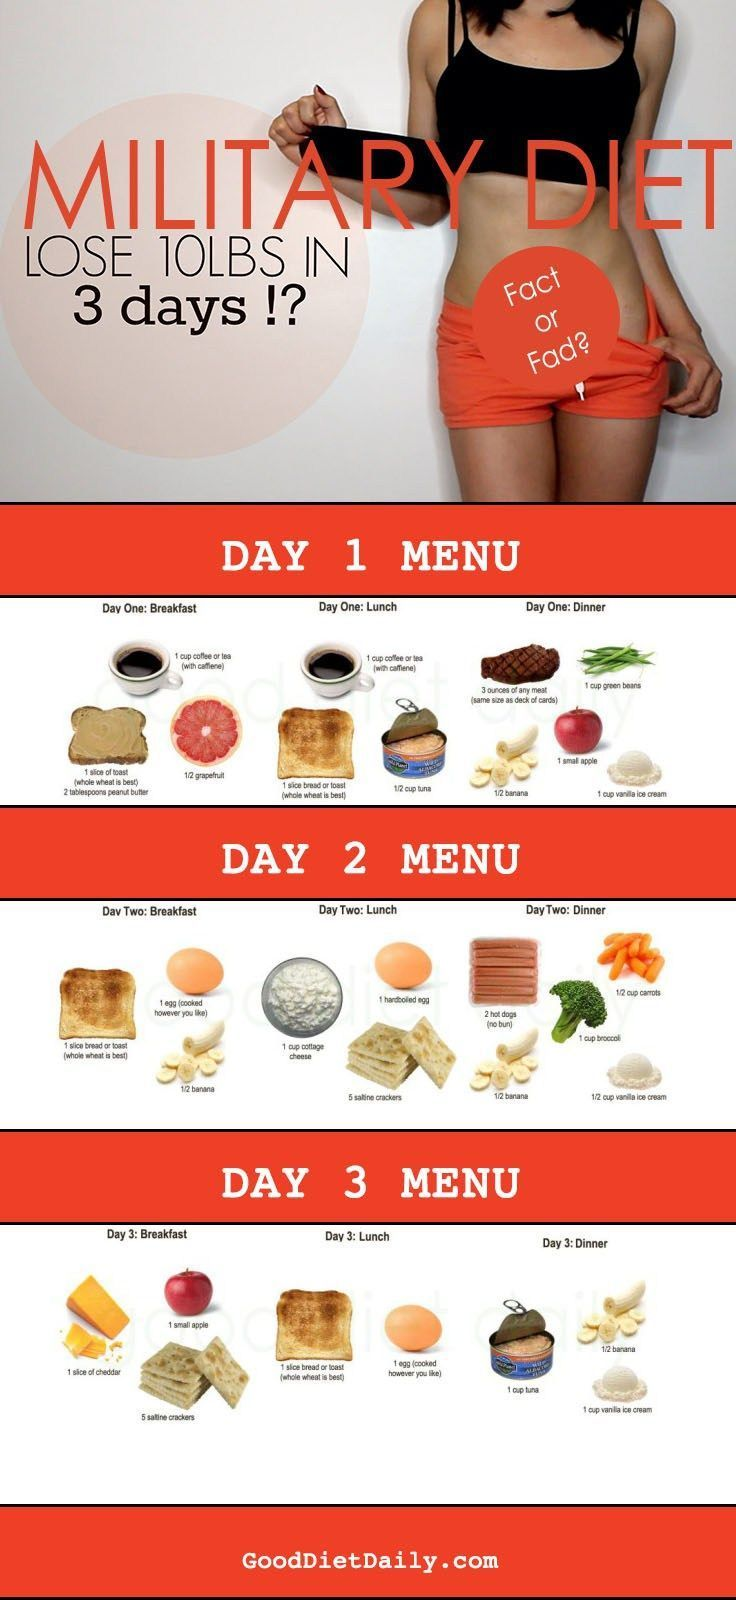 Lose weight fast images image 10